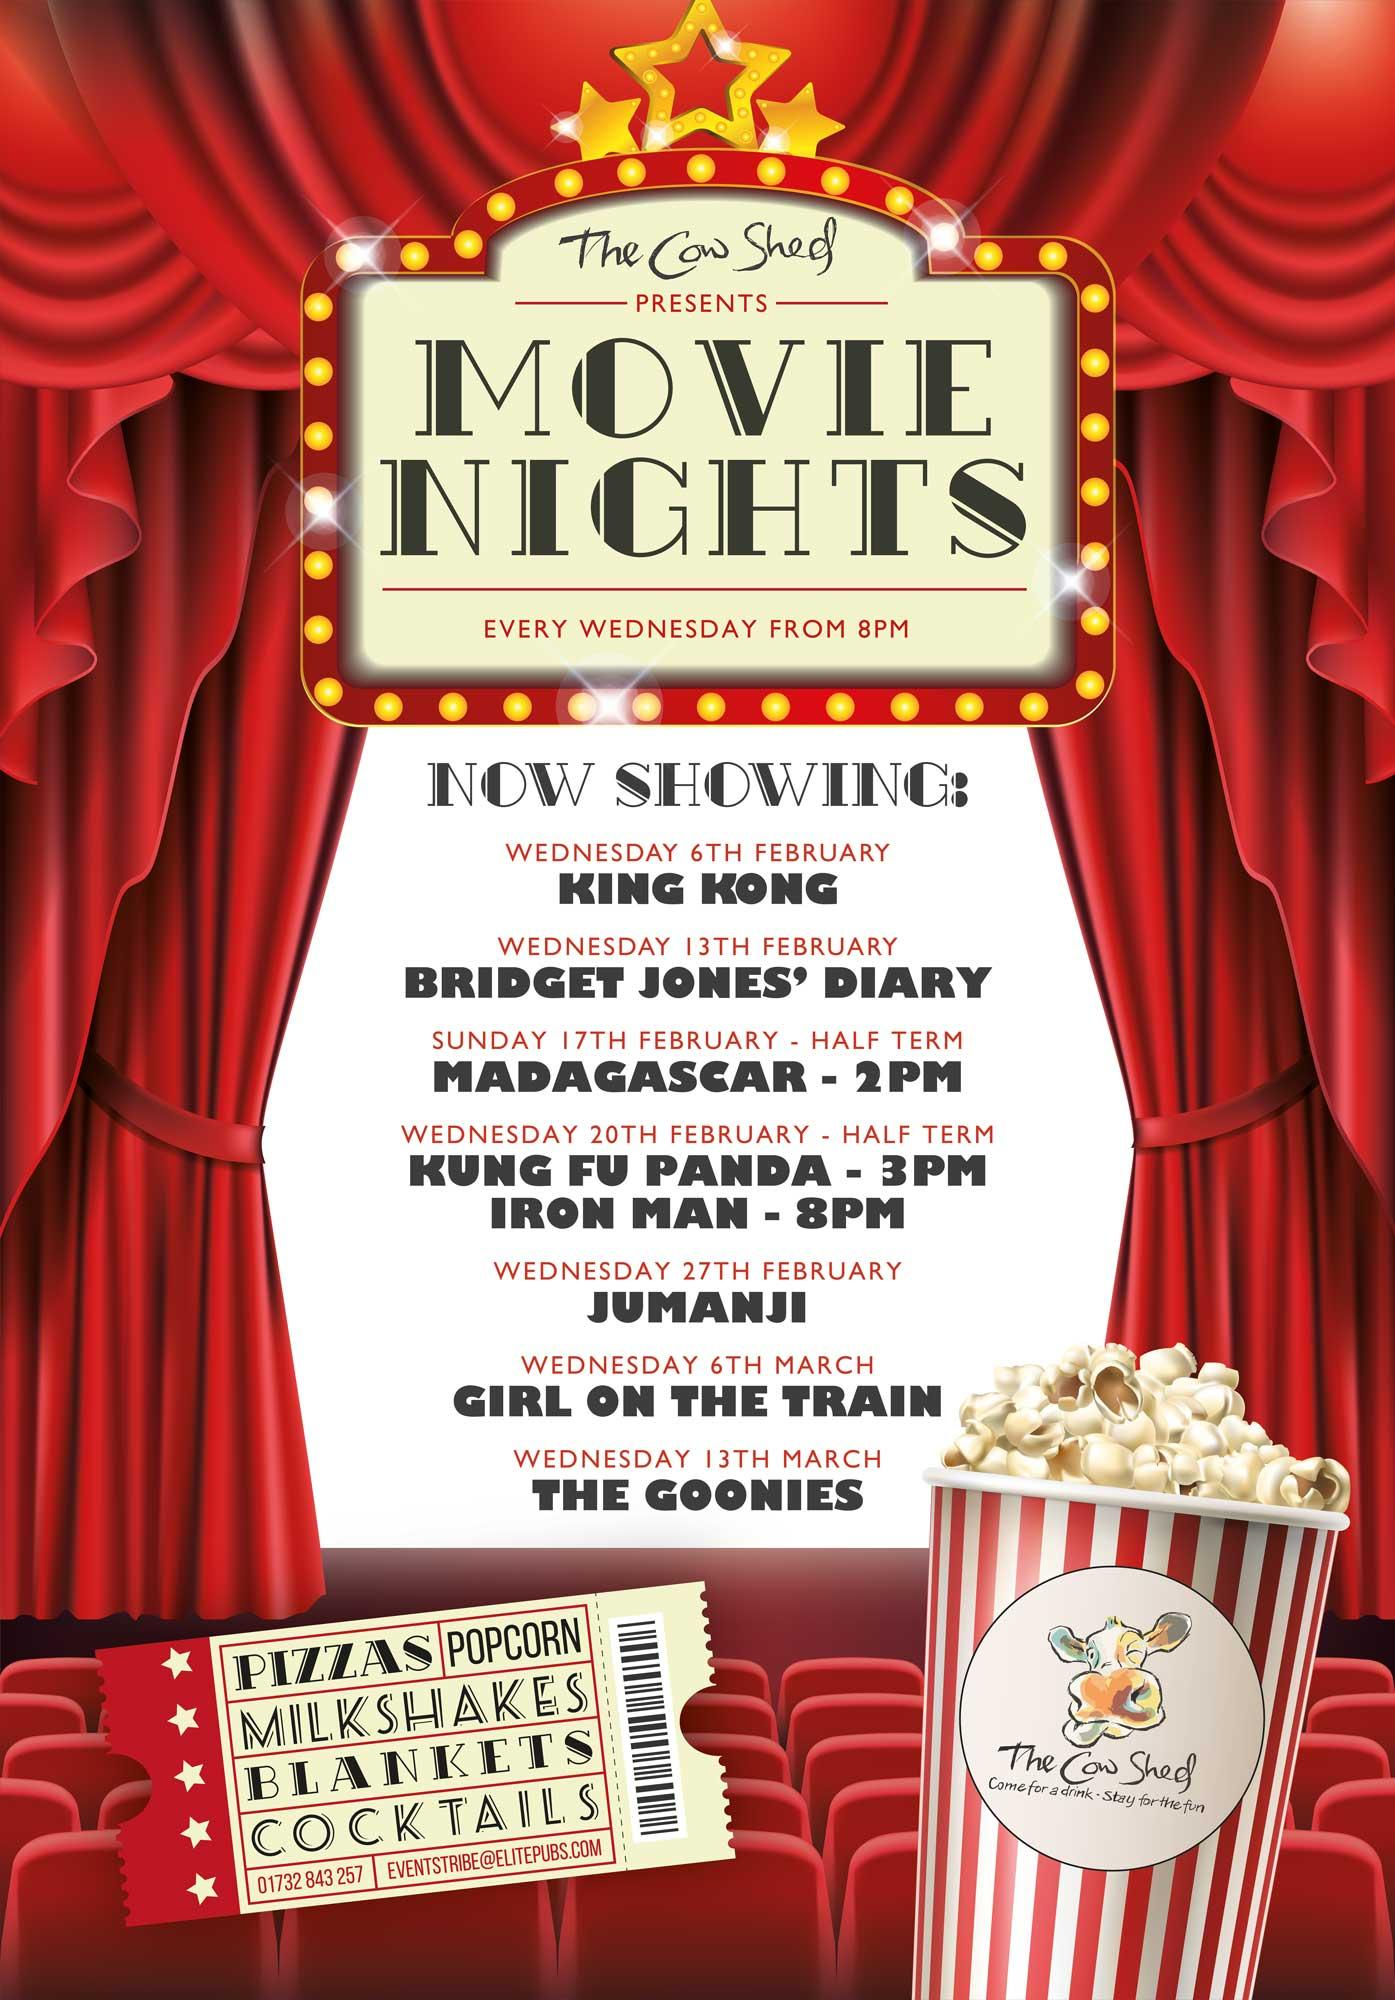 Movie nights at The Cow Shed